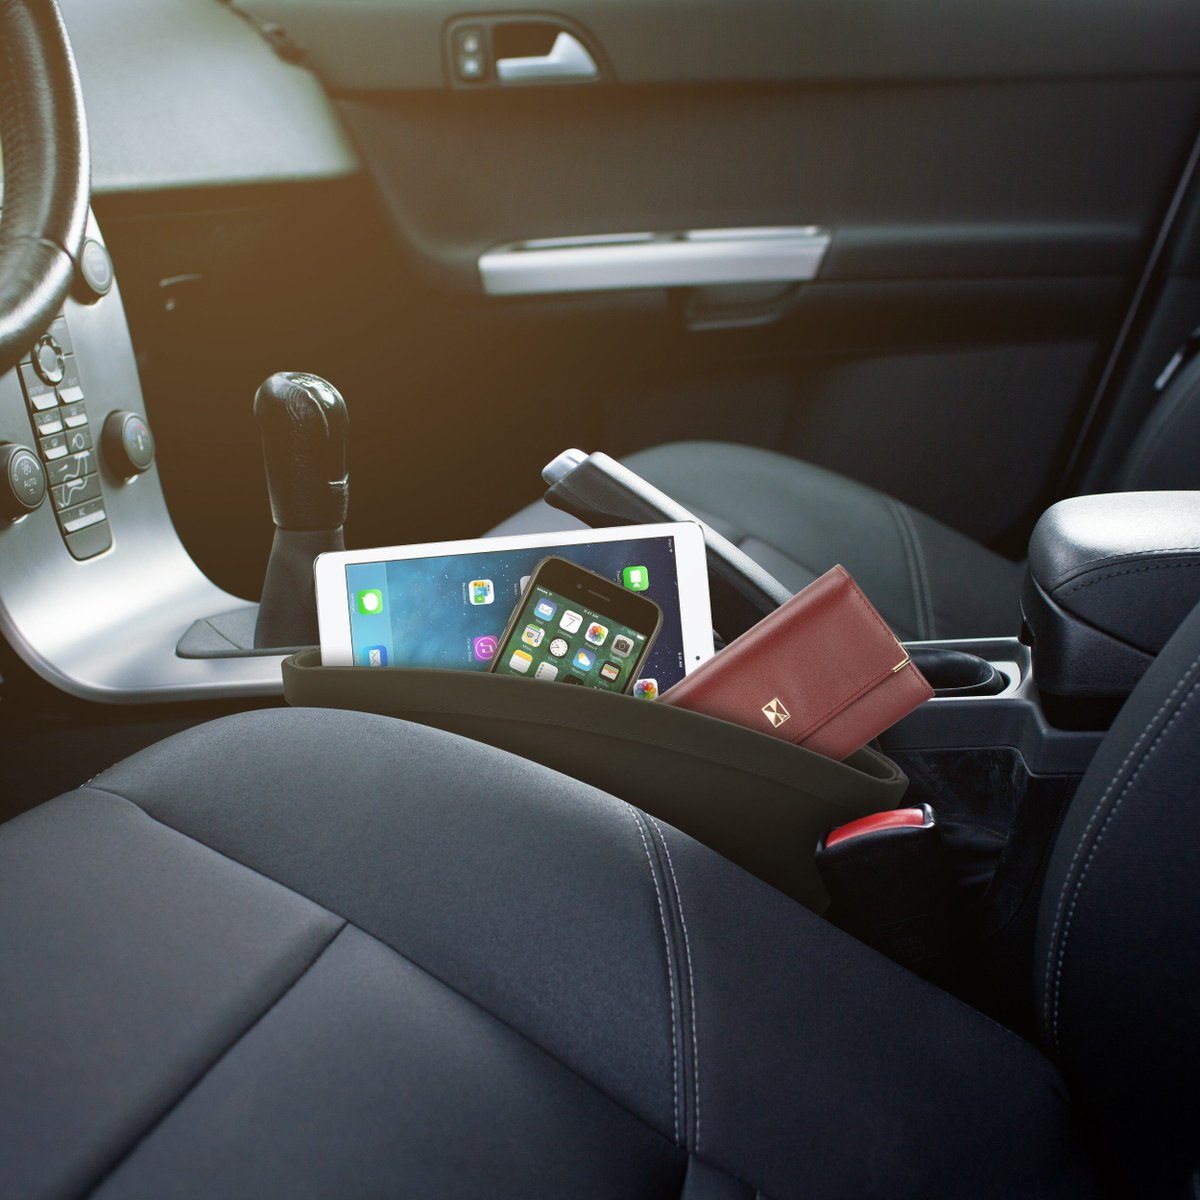 RT https://t.co/BfzKhAVn6R RT https://t.co/QwUXMFoEru RT @Promate: Don't ever drop your phone, wallet or any other essentials in your car. Get a CarPouch. https://t.co/gKQk6Y3xav #Car #CarA… https://t.co/A73OwQrvaO